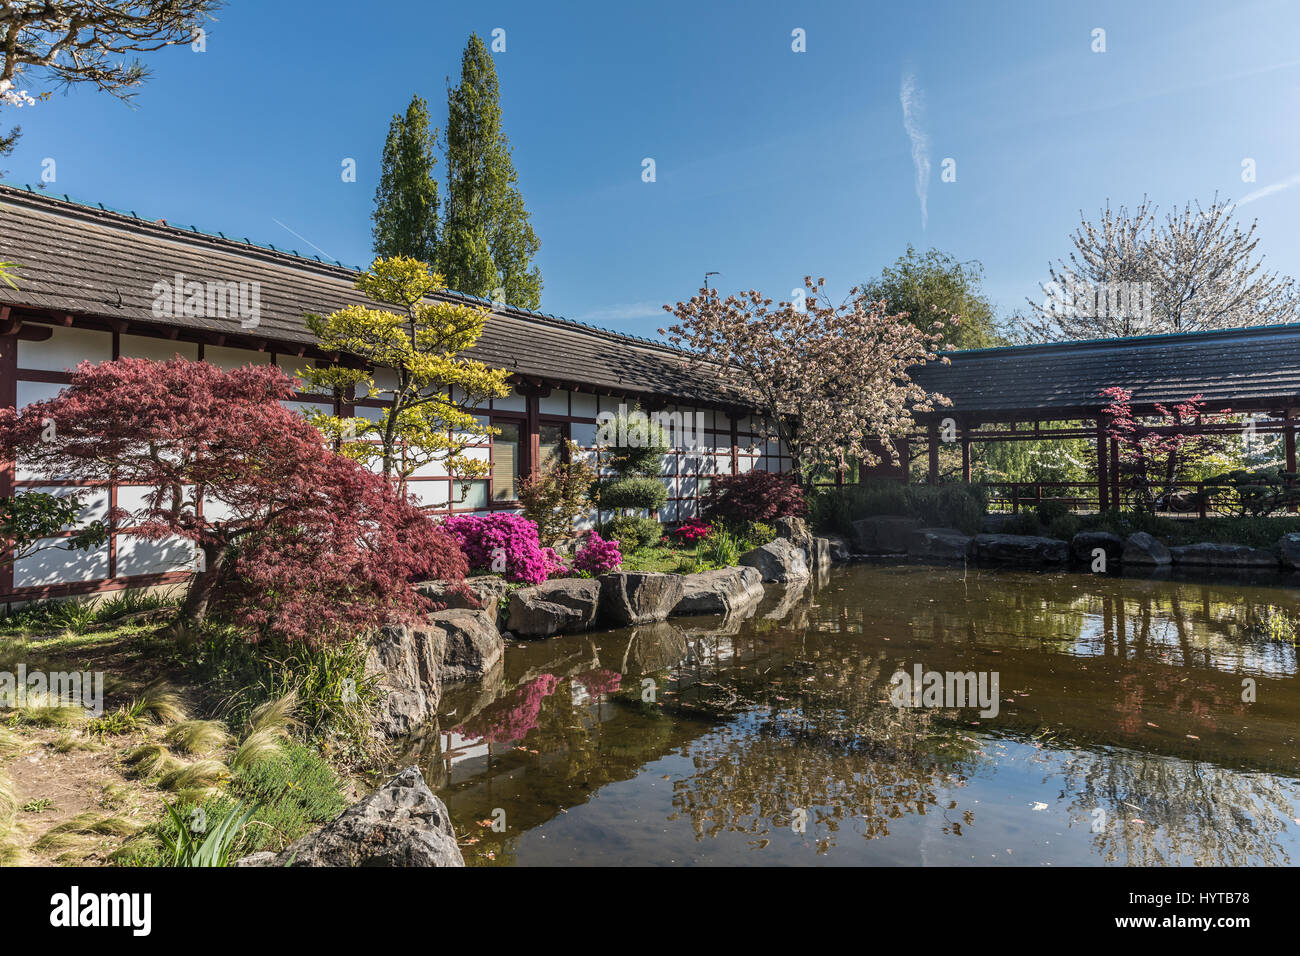 Japanese Garden On Versailles Island In Nantes, France   Stock Image